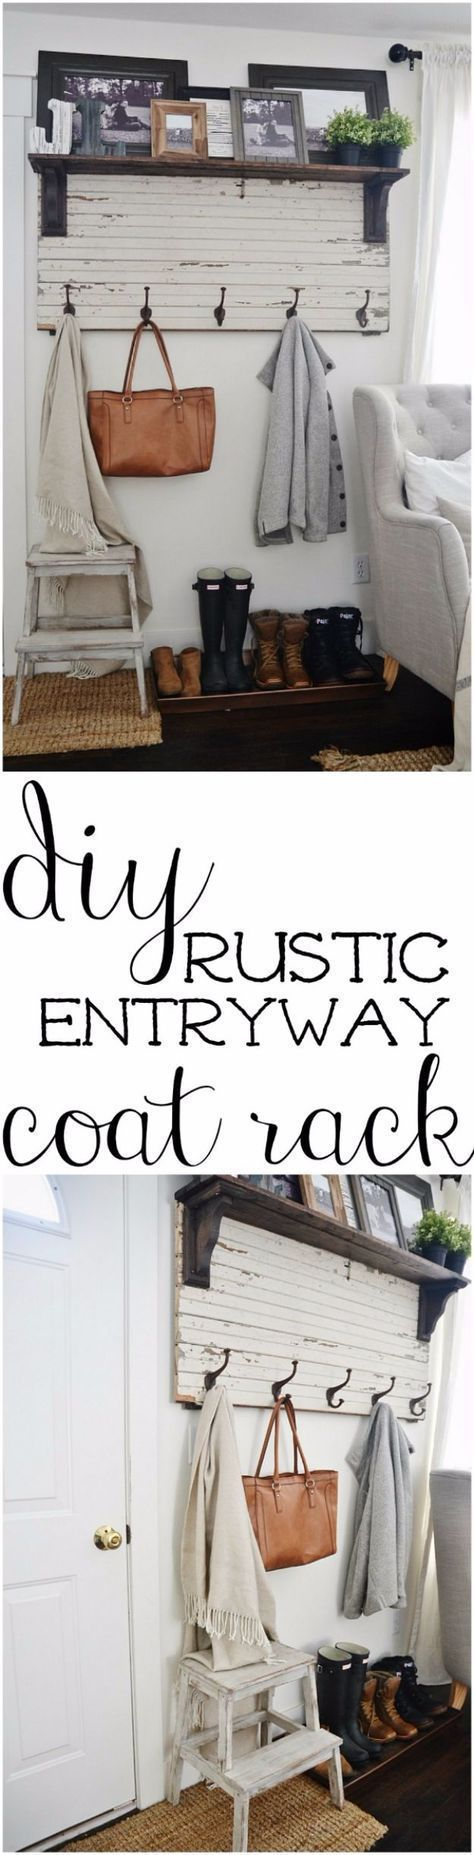 Best Country Decor Ideas - DIY Rustic Entryway Coat Rack - Rustic Farmhouse  Decor Tutorials and Easy Vintage Shabby Chic Home Decor for Kitchen, ...